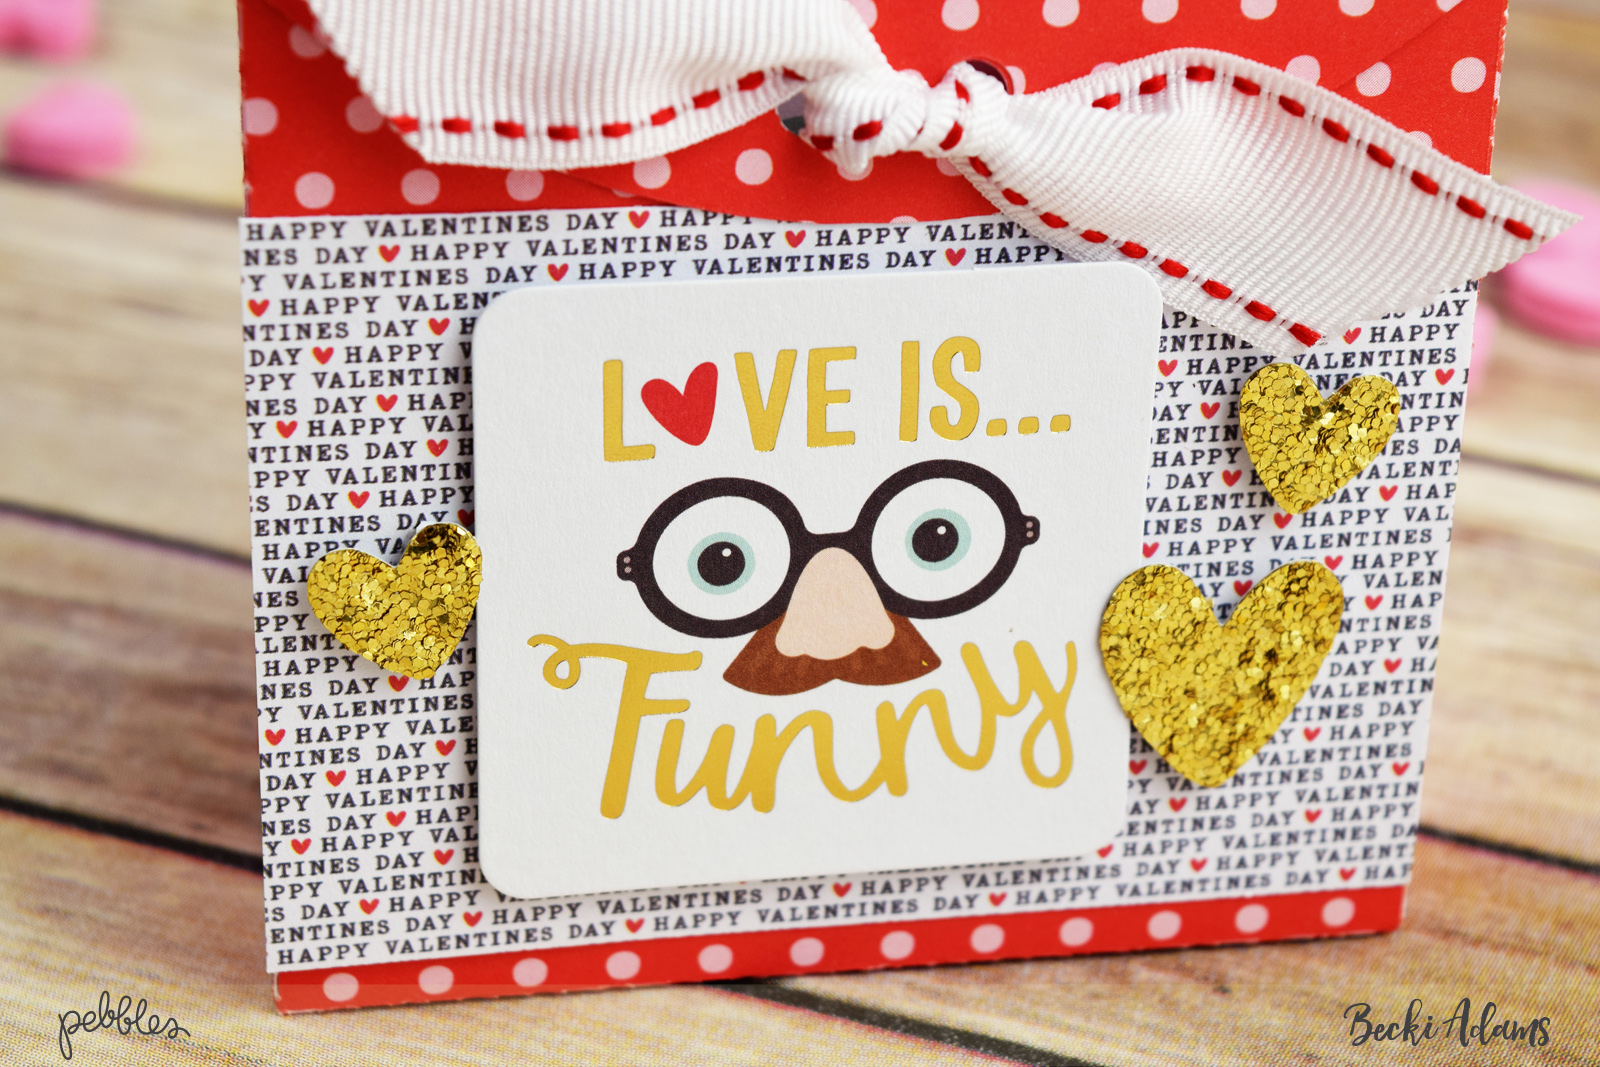 Valentines Quick Gift Idea by @jbckadams for @pebblesinc #valentinesgift #pebblesinc #BeckiAdams #papercraft